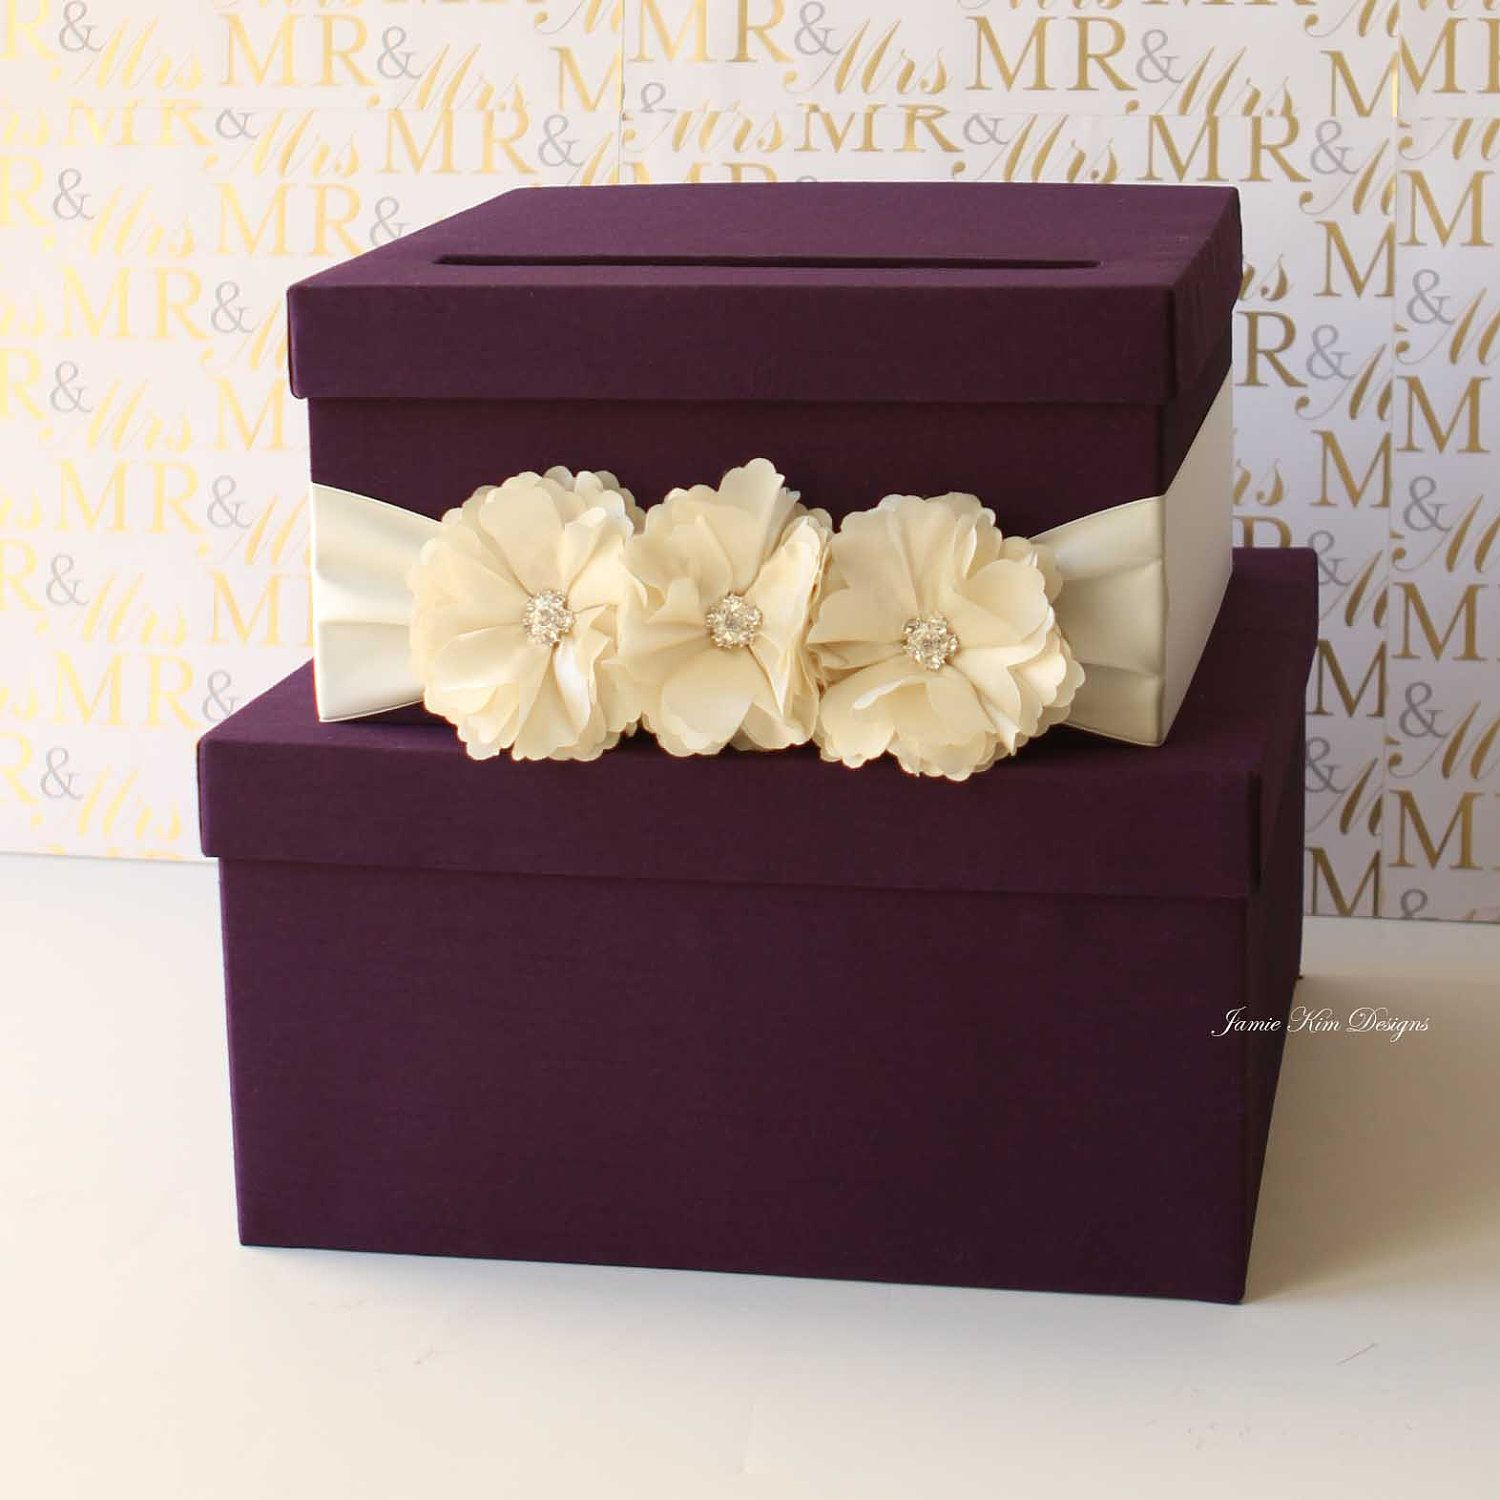 Wedding Wedding Money Box card box wedding money 3 tier ivory 10 best images about car ideas on pinterest vintage suitcases holders and birdcages